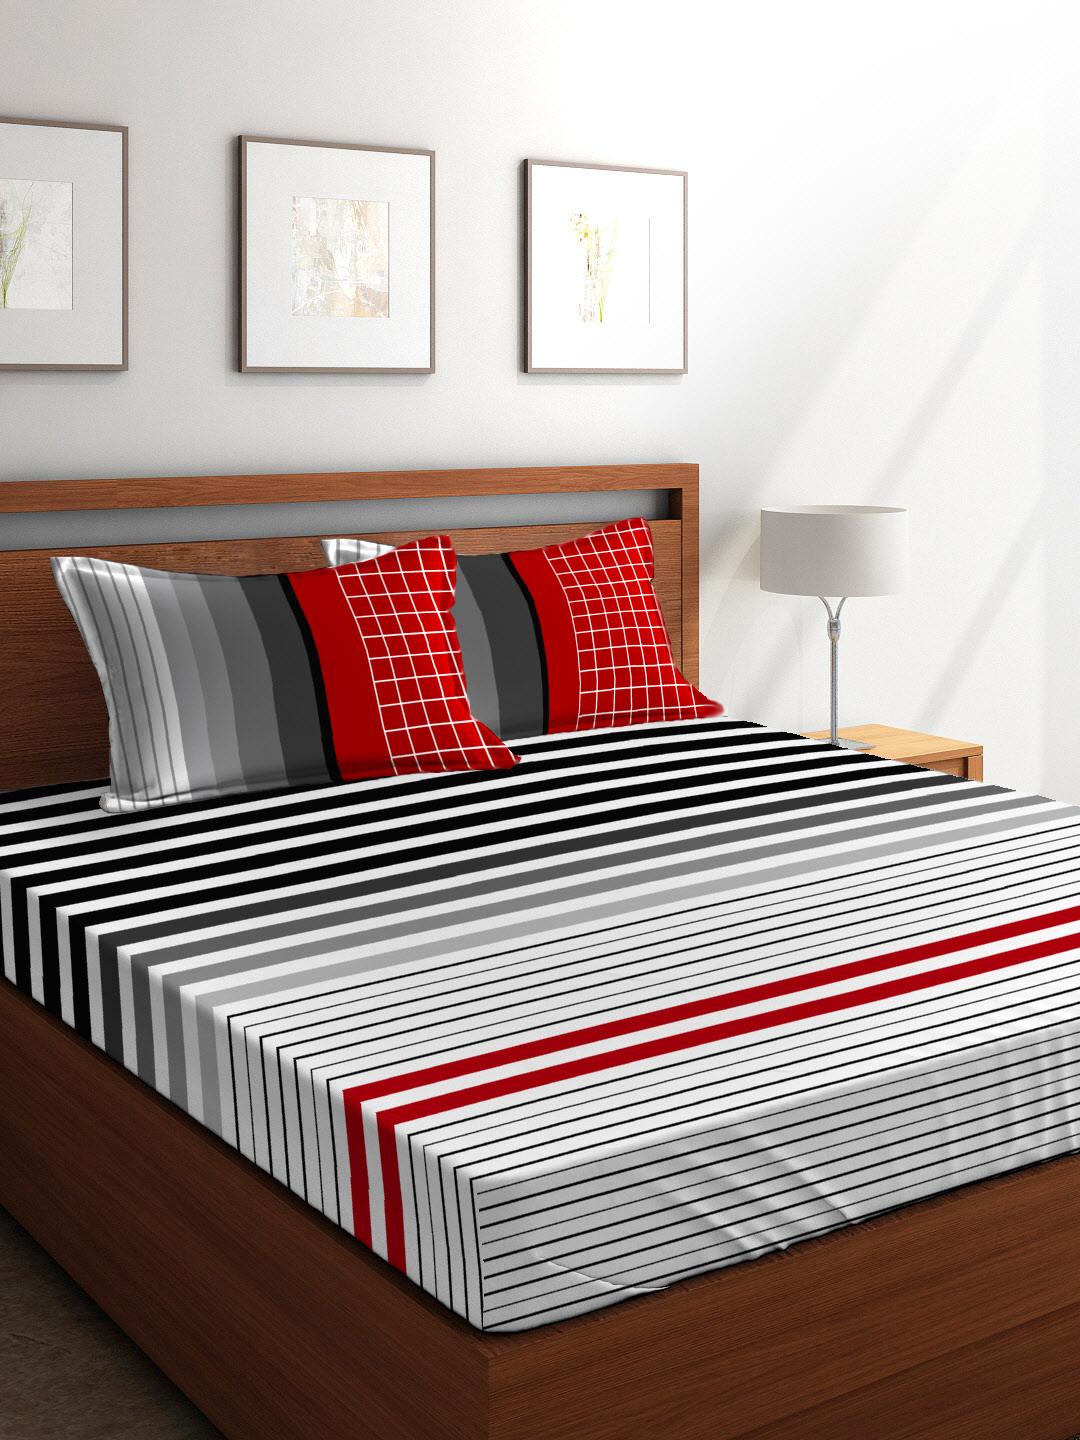 Buy Rio Cotton Double Bed Sheets In White Black Red Colour By